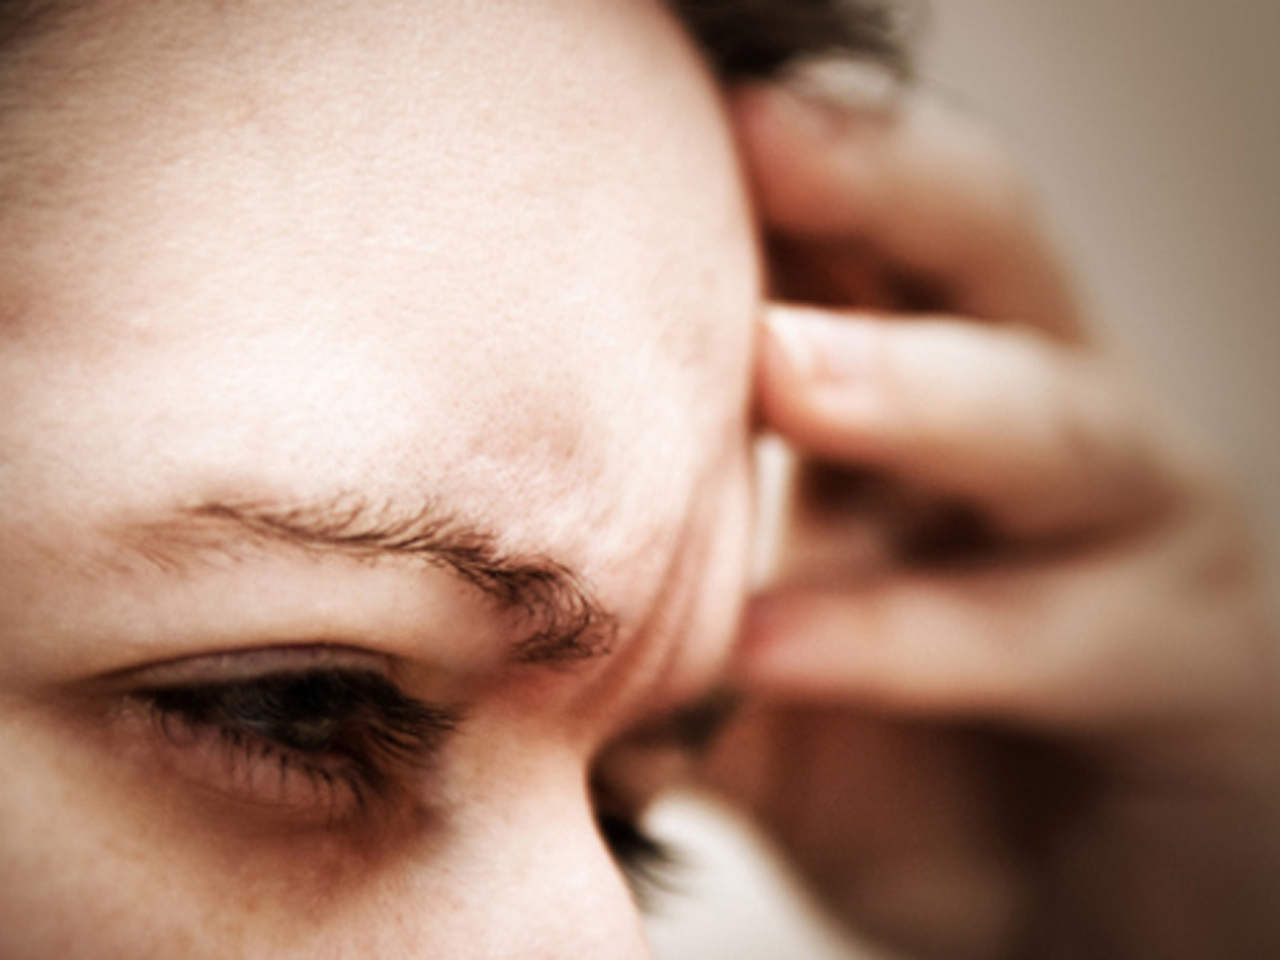 Migraines plus depression may equal smaller brain - CBS News